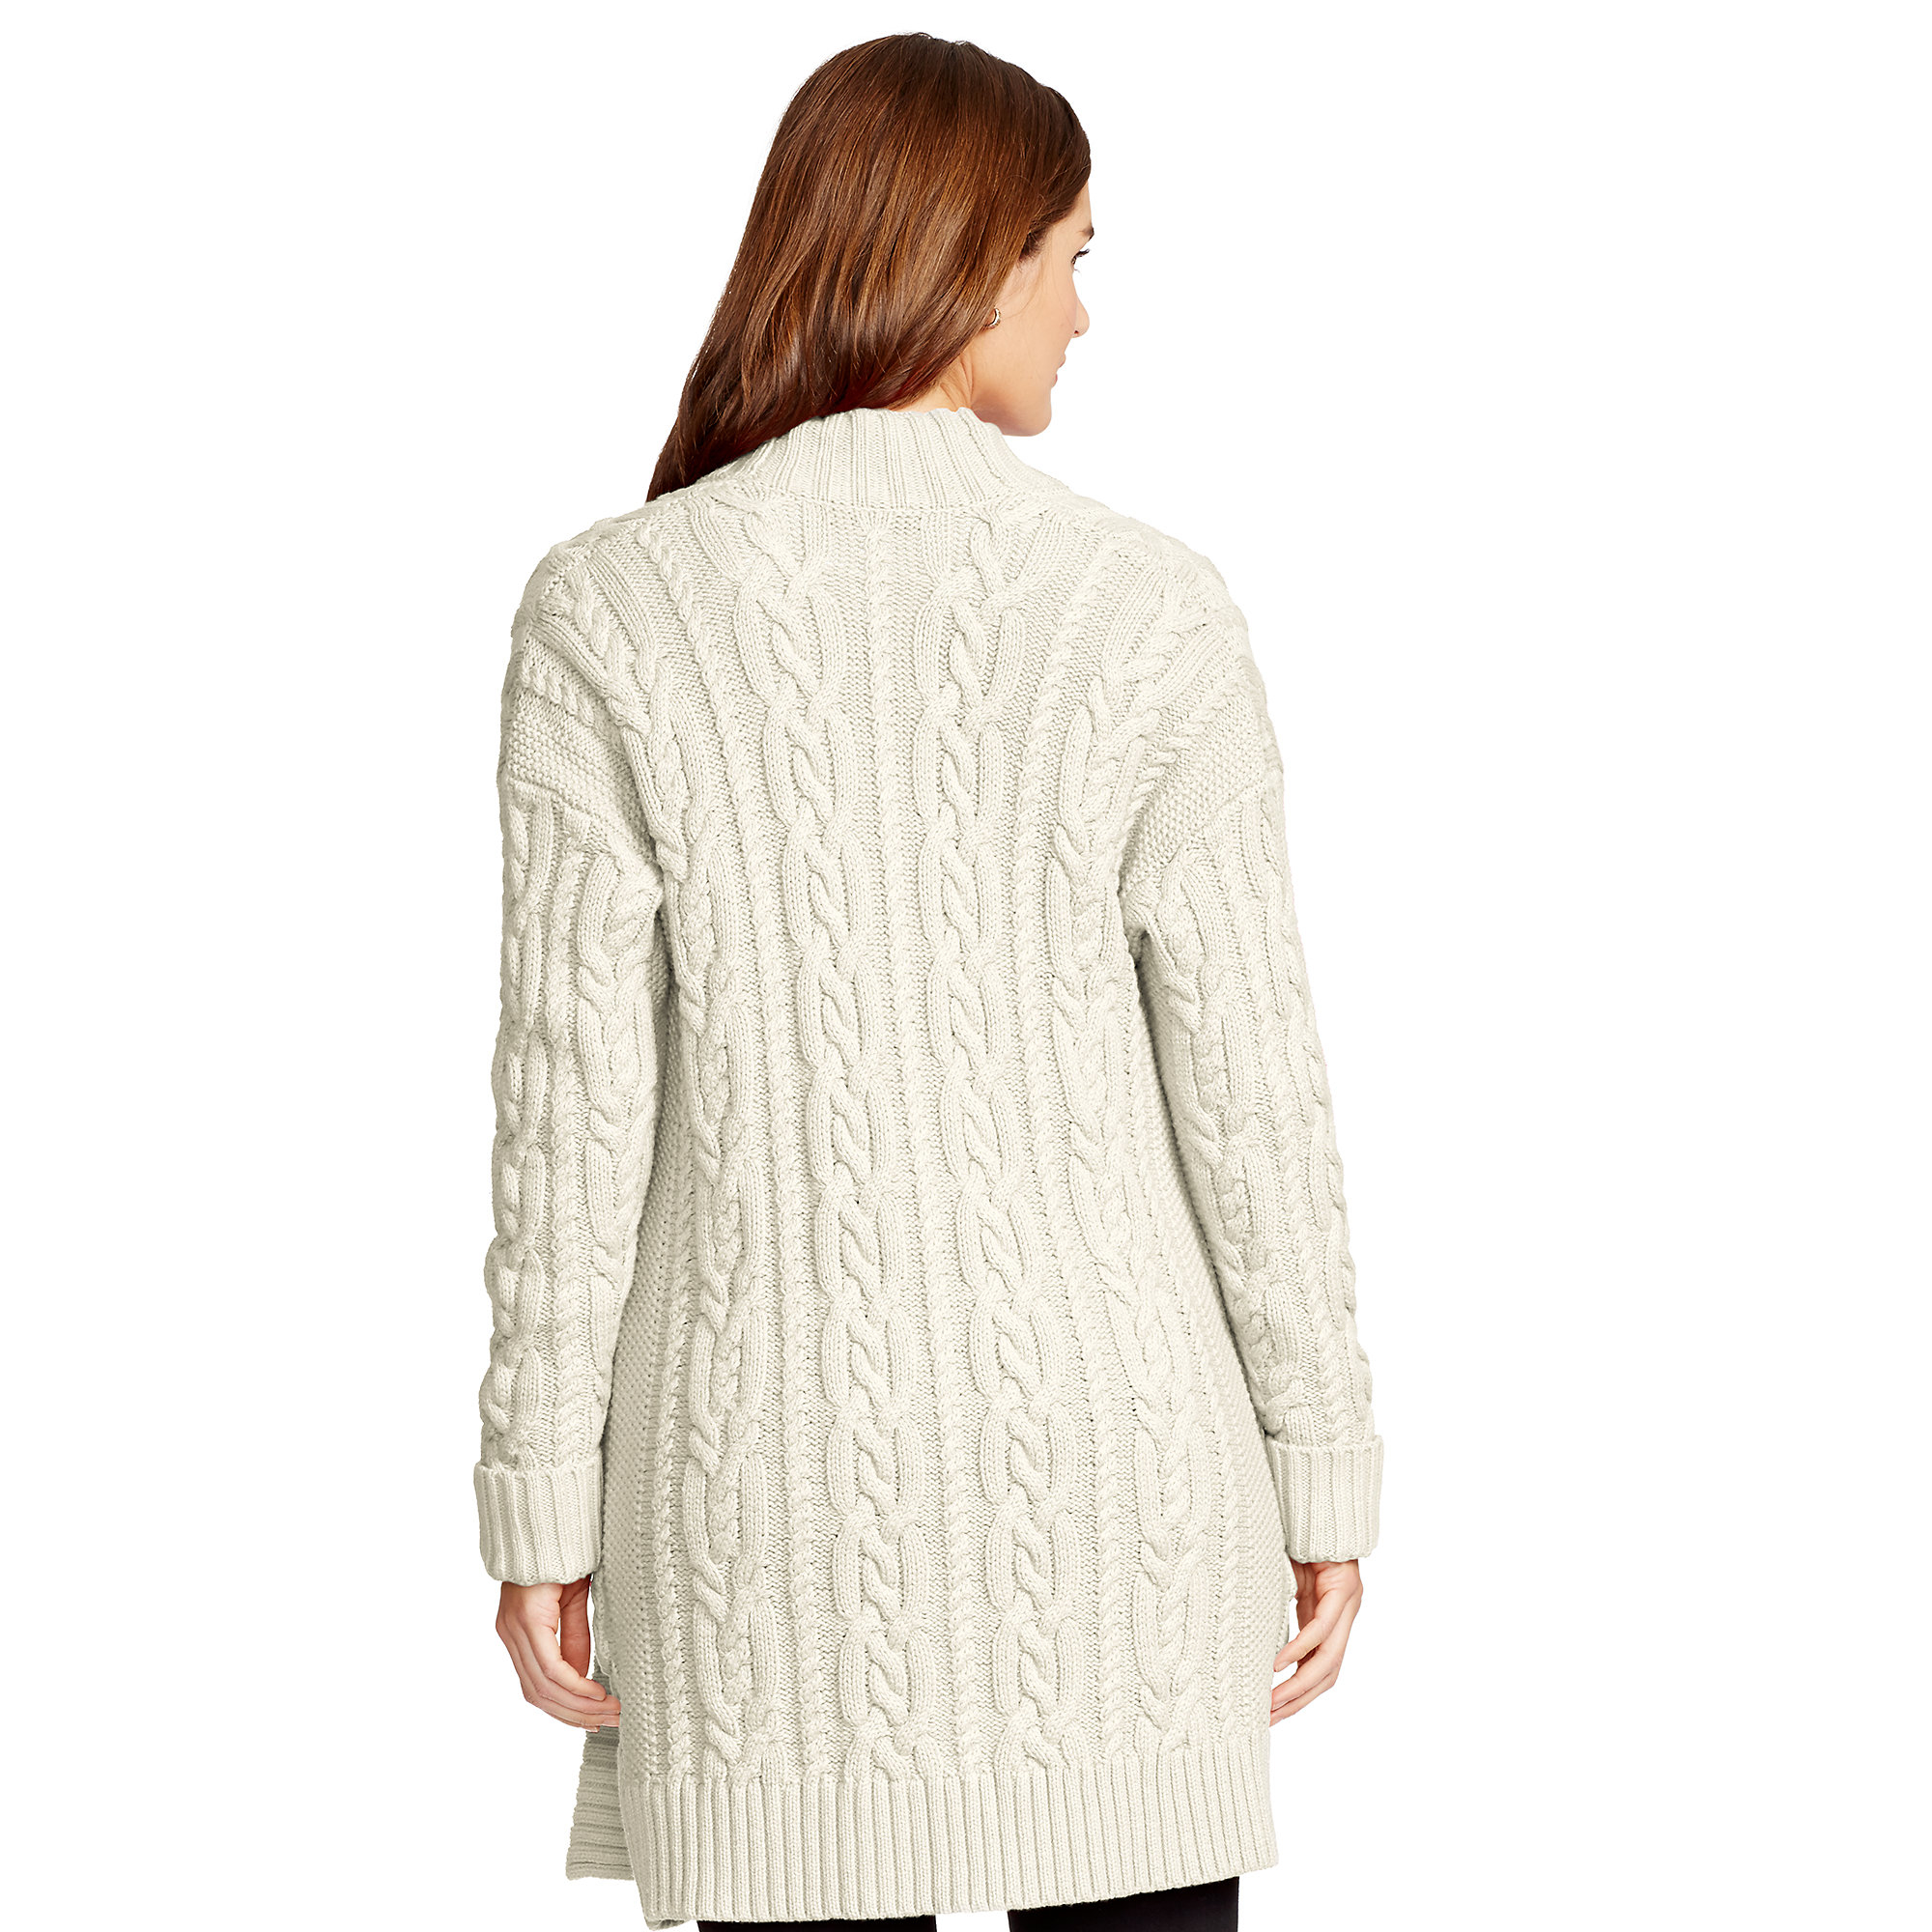 Ralph lauren Cable-knit Cotton Cardigan in Natural | Lyst